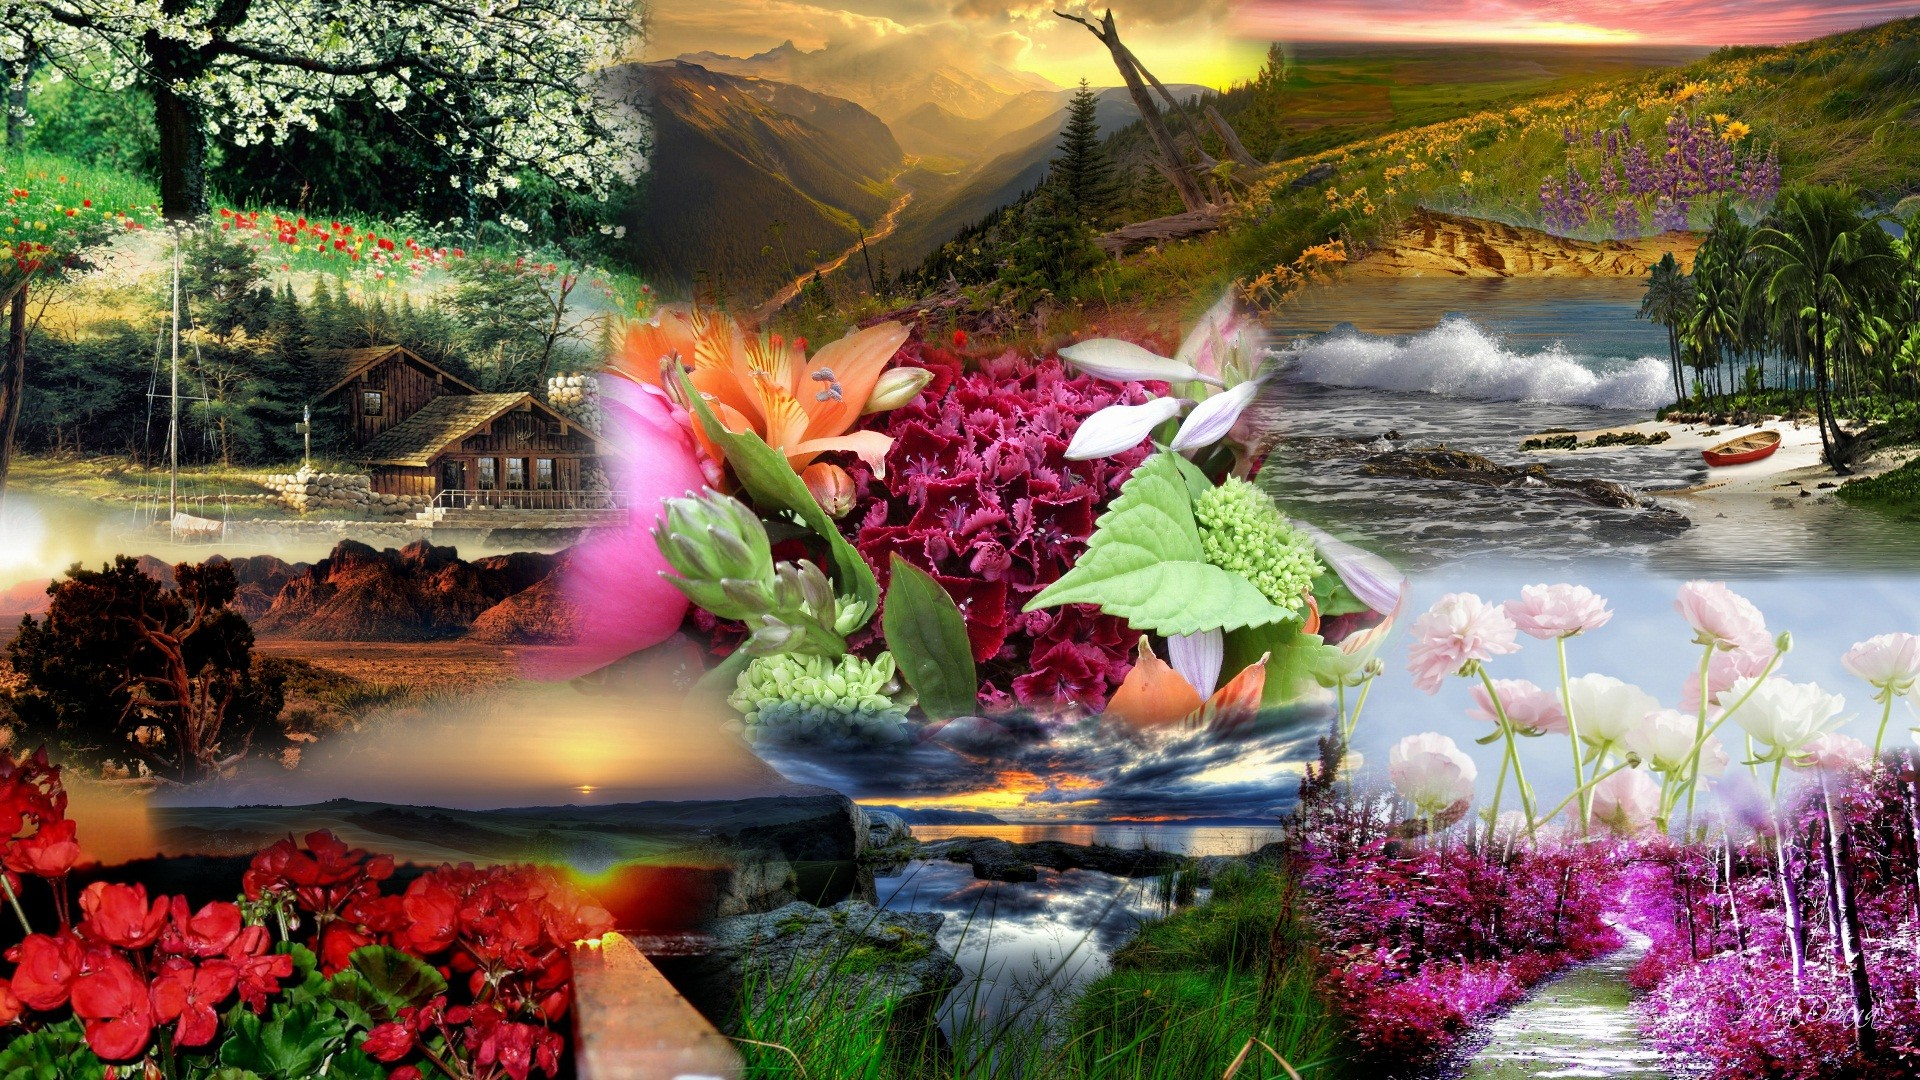 Most Beautiful Nature Widescreen High Definition Wallpaper For 1920x1080